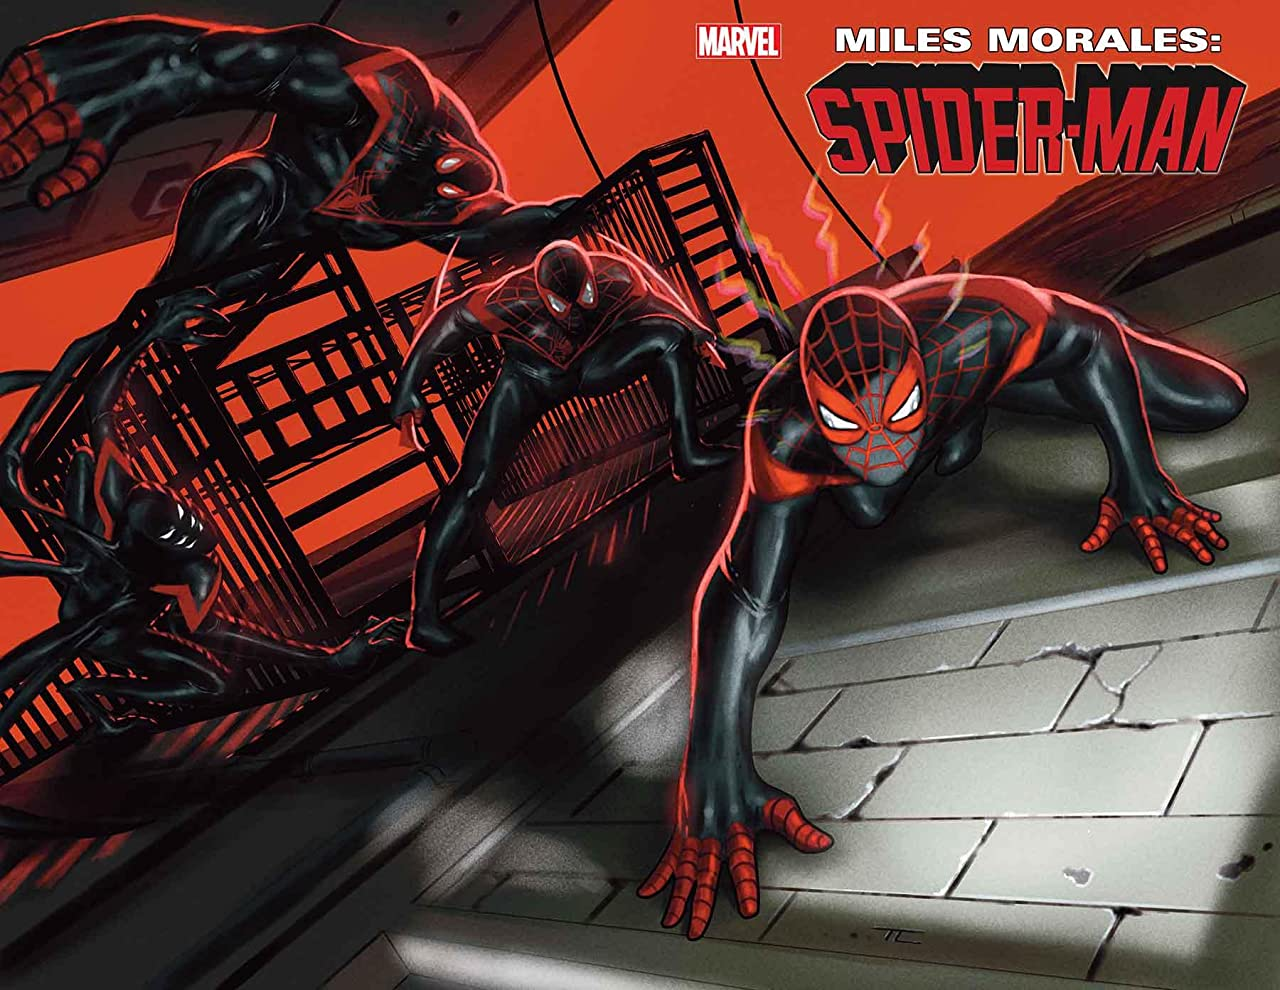 'Miles Morales: Spider-Man' #25 actually makes you want another Clone Saga